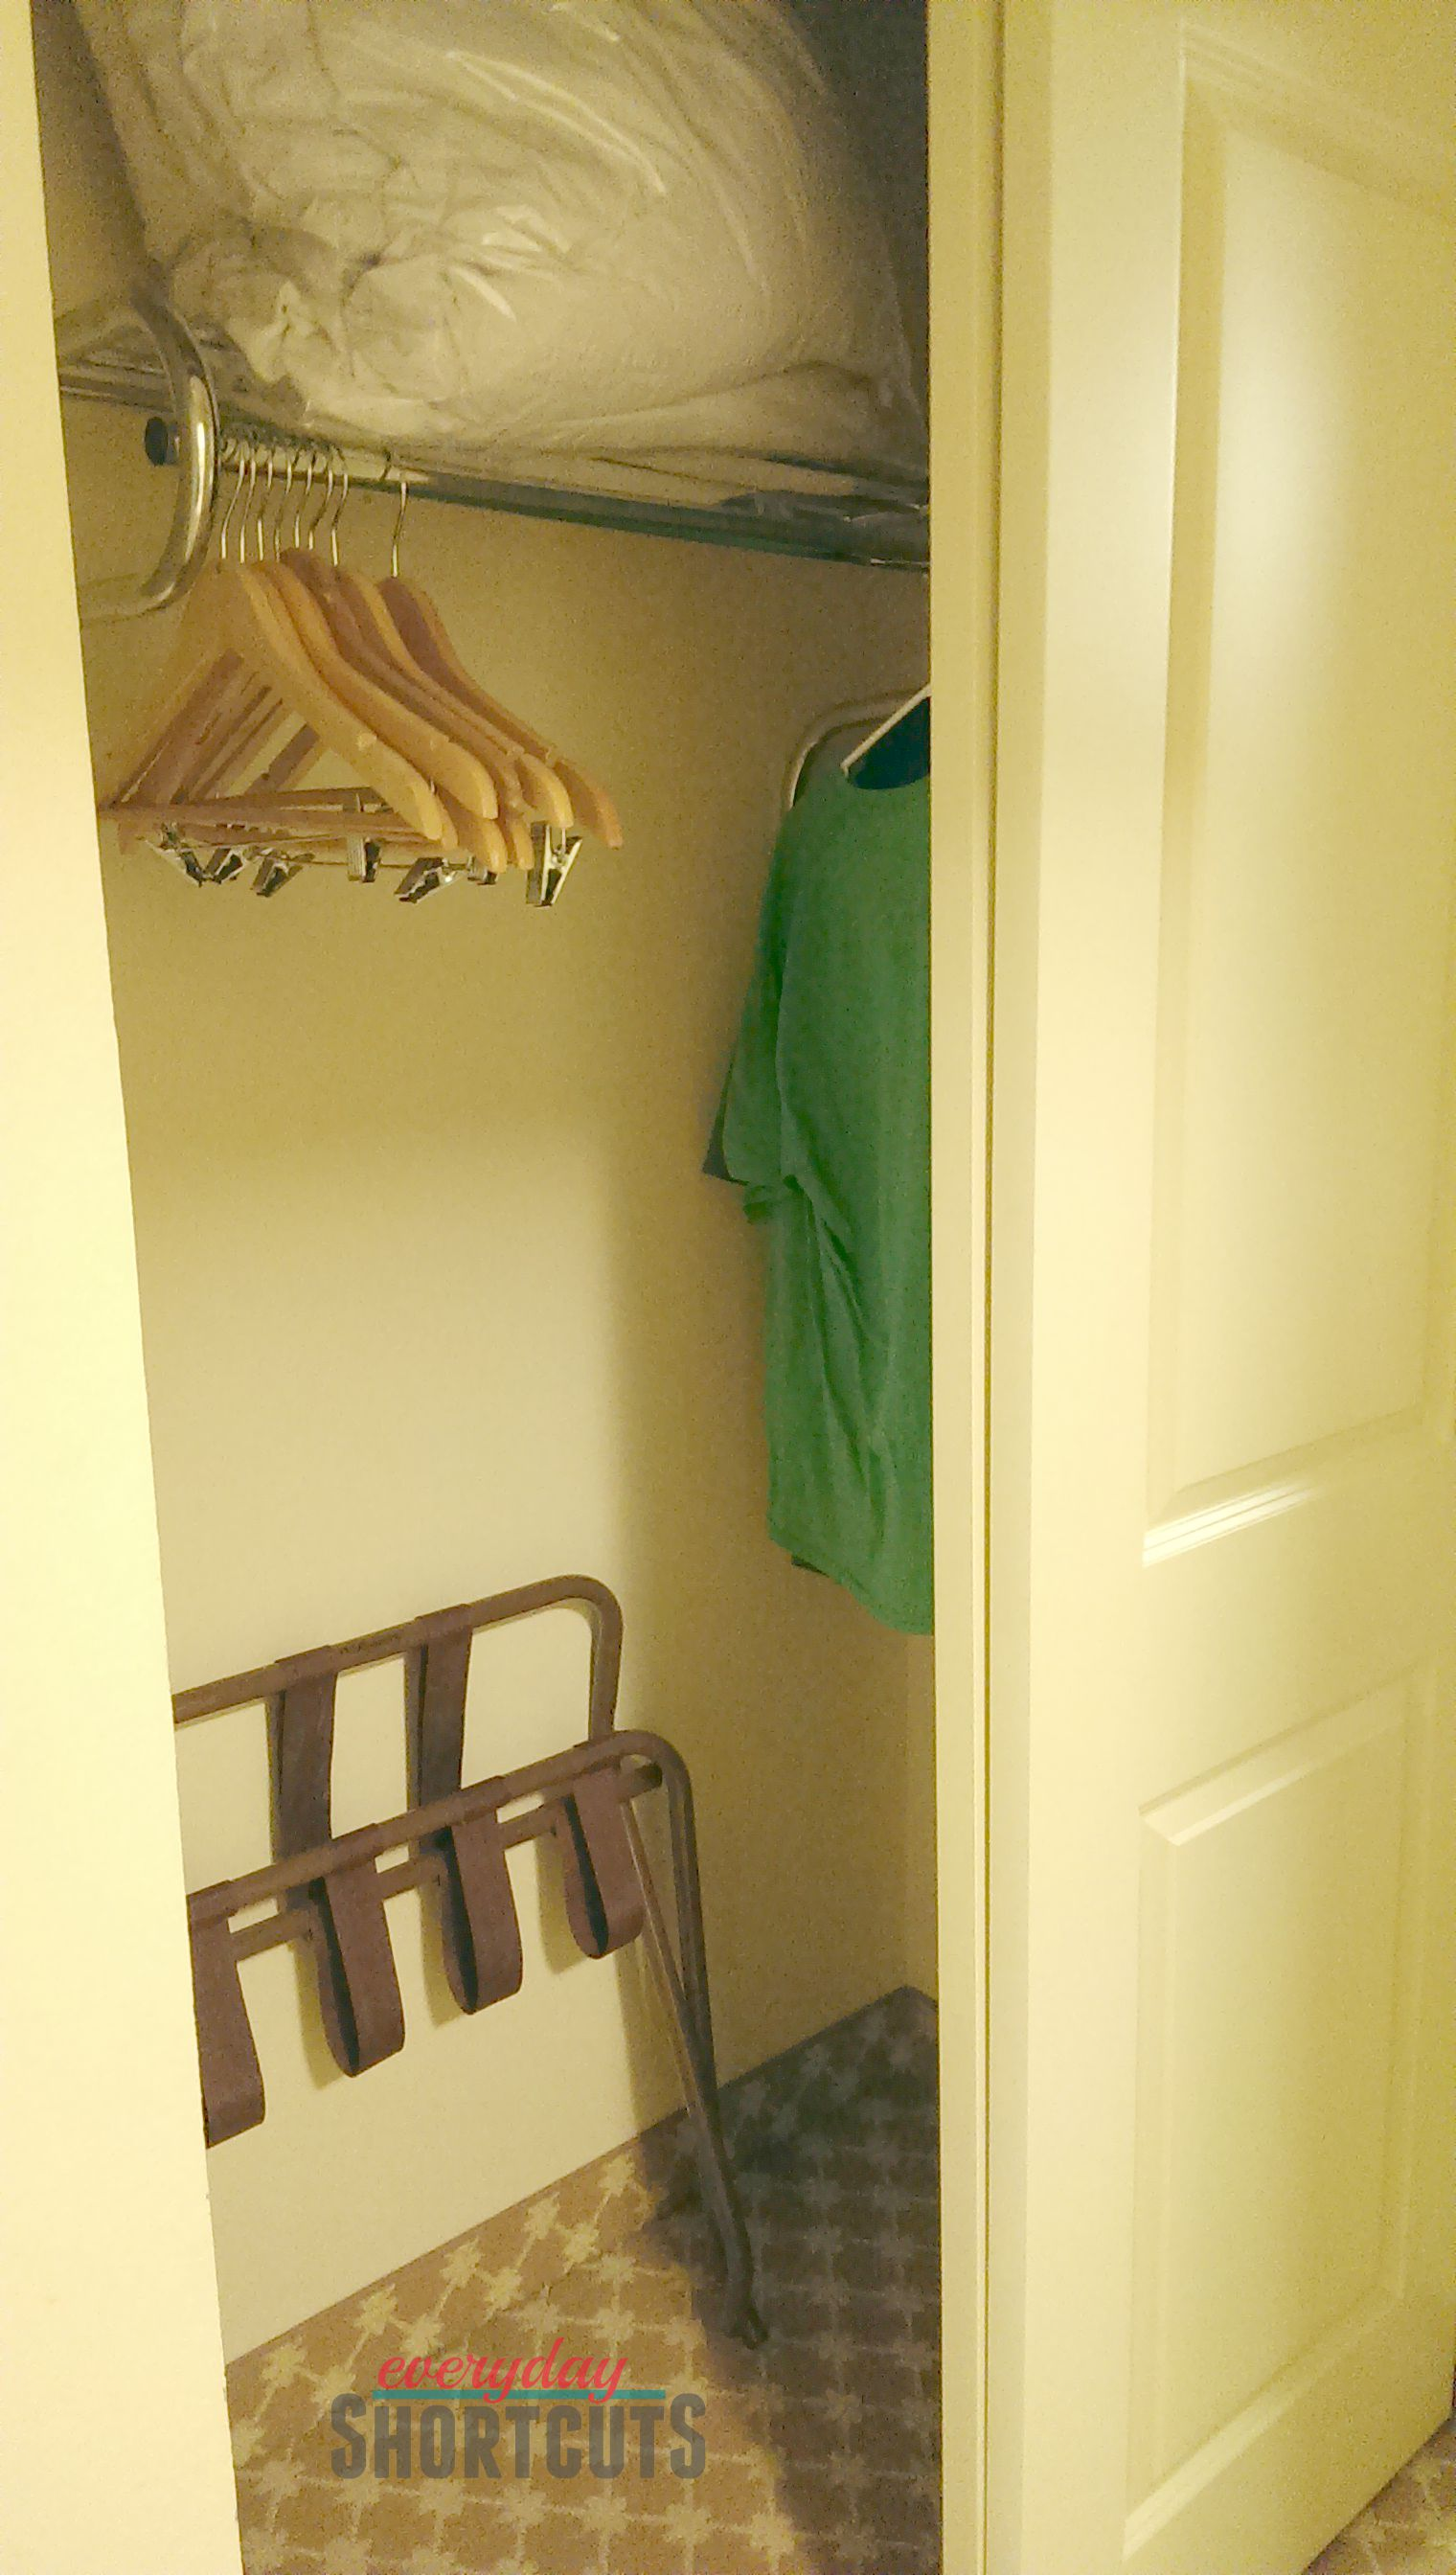 country inn & suites closet space